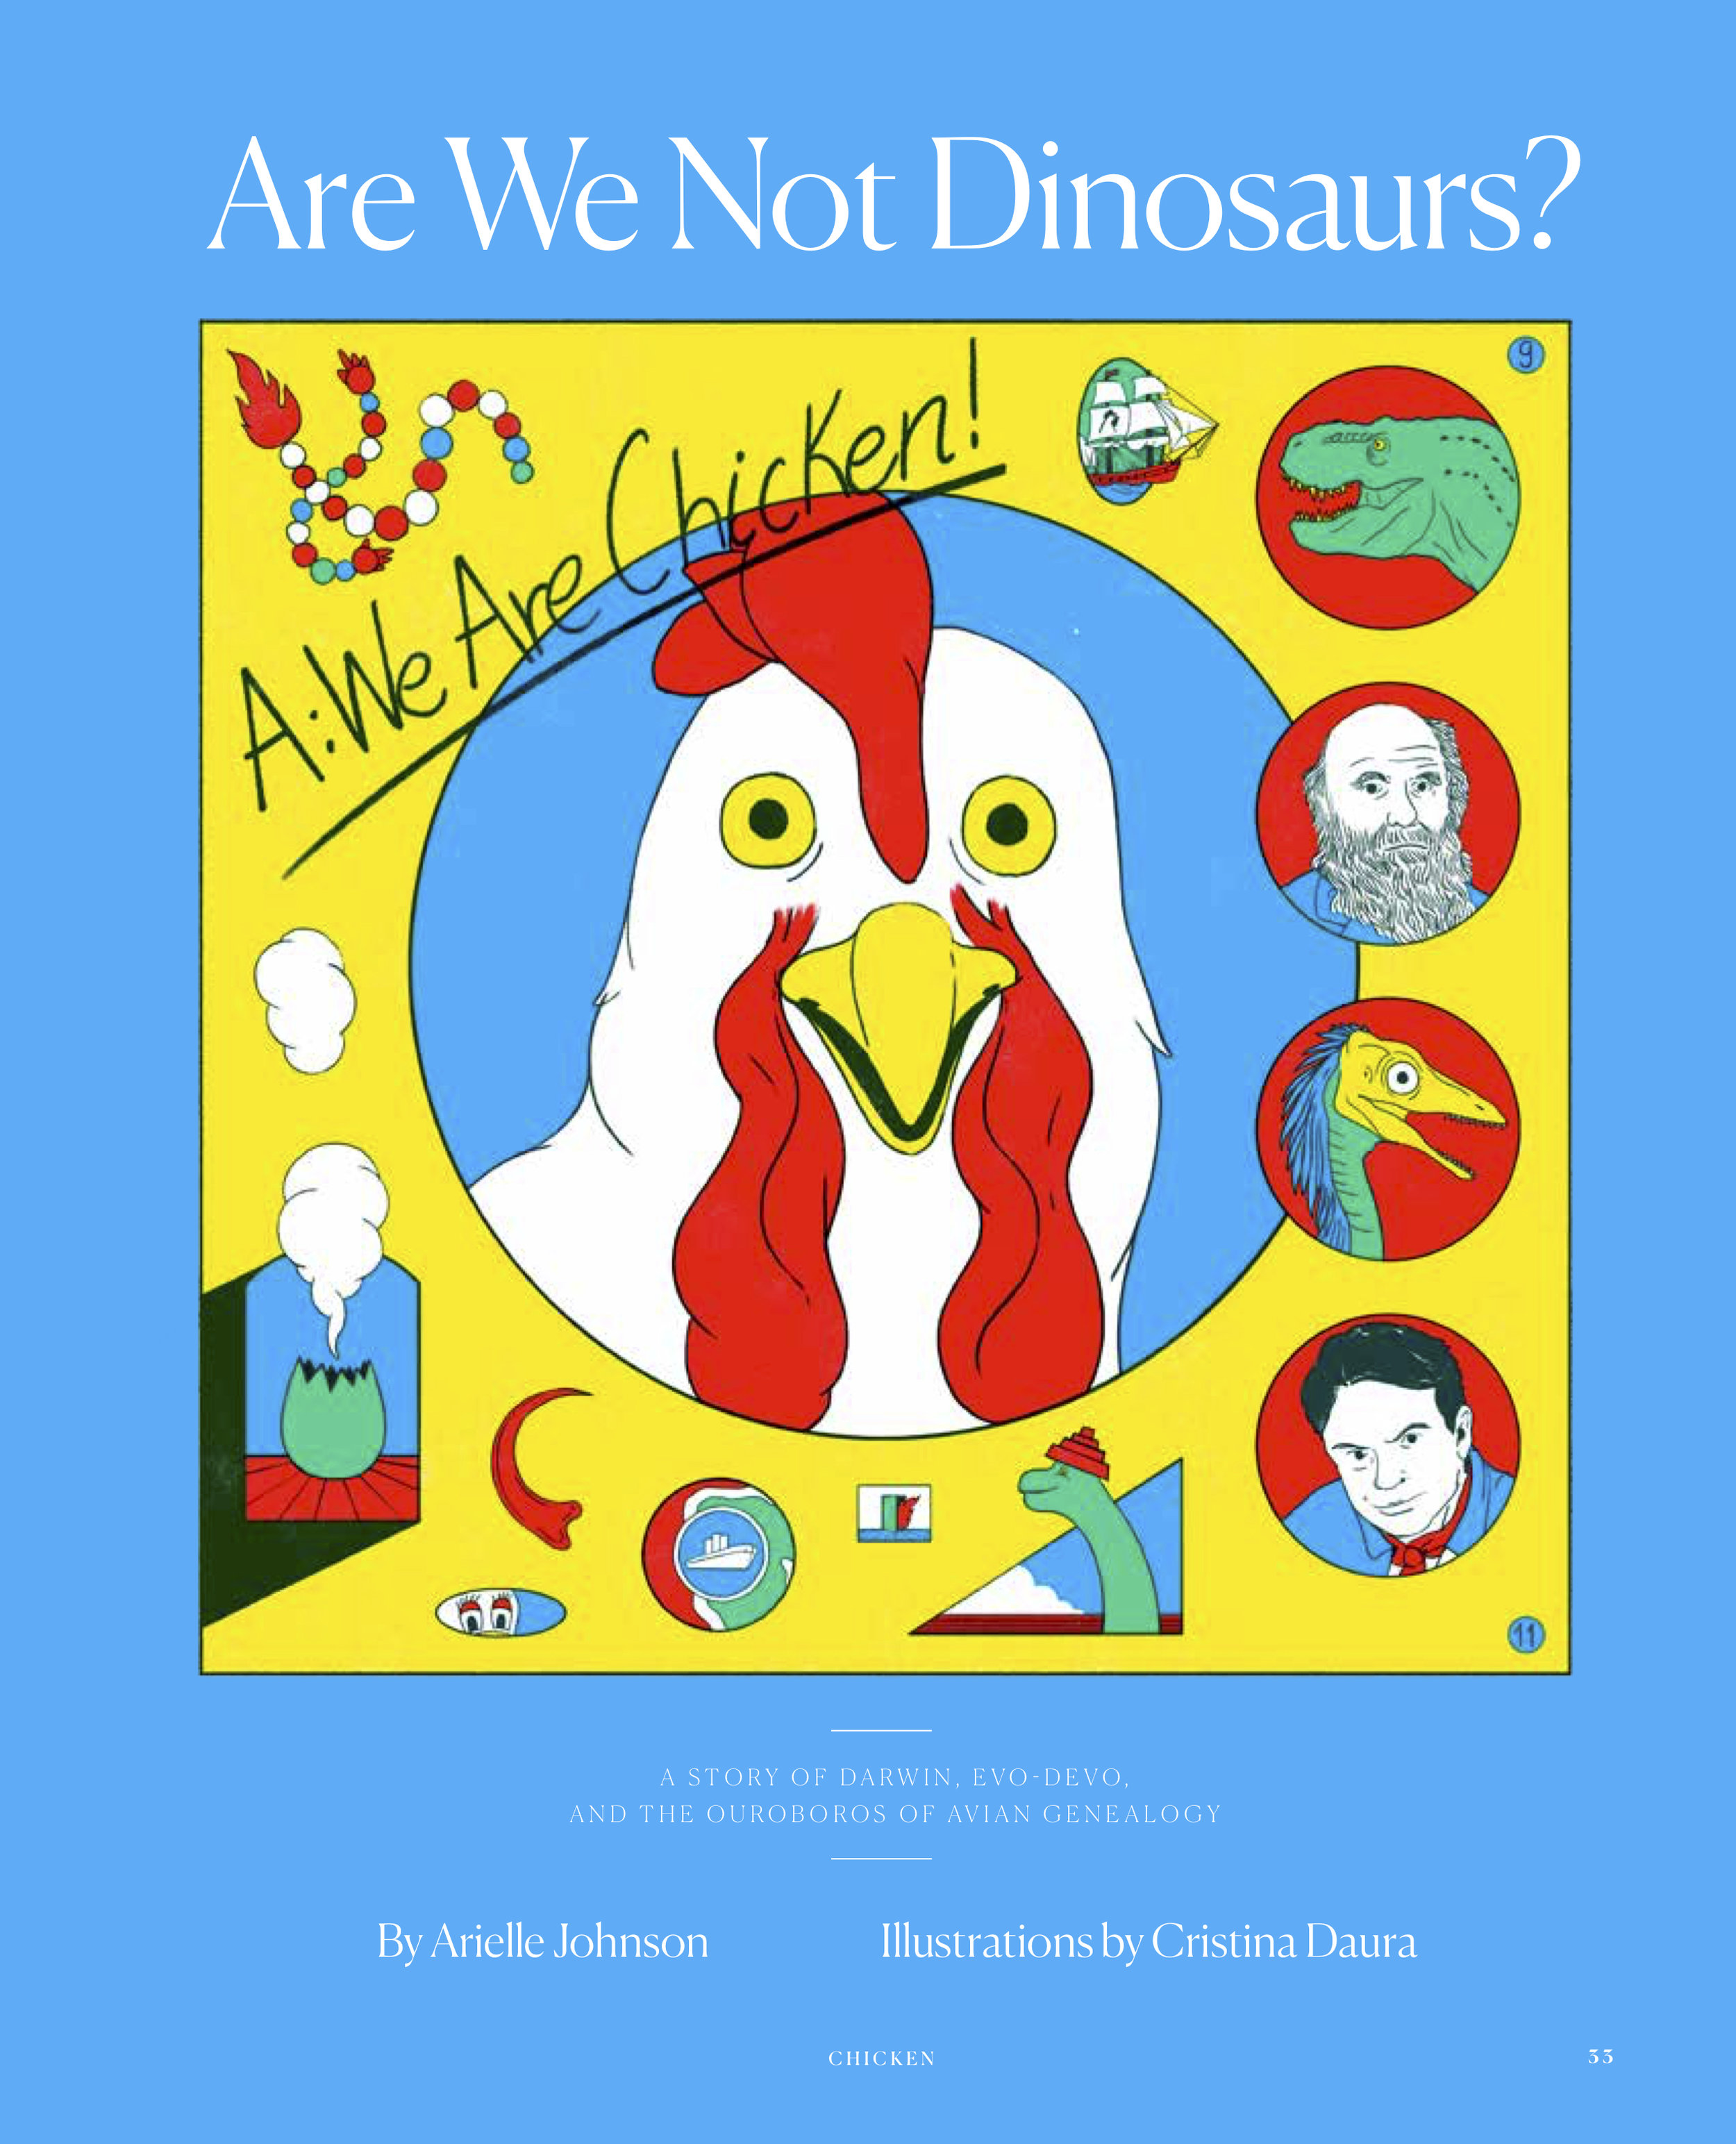 Are We Not Dinosaurs? A: We Are Chicken! from Lucky Peach: The Chicken Issue - A story of Darwin, Evo-Devo, and the ouroboros of avian genealogy Read More